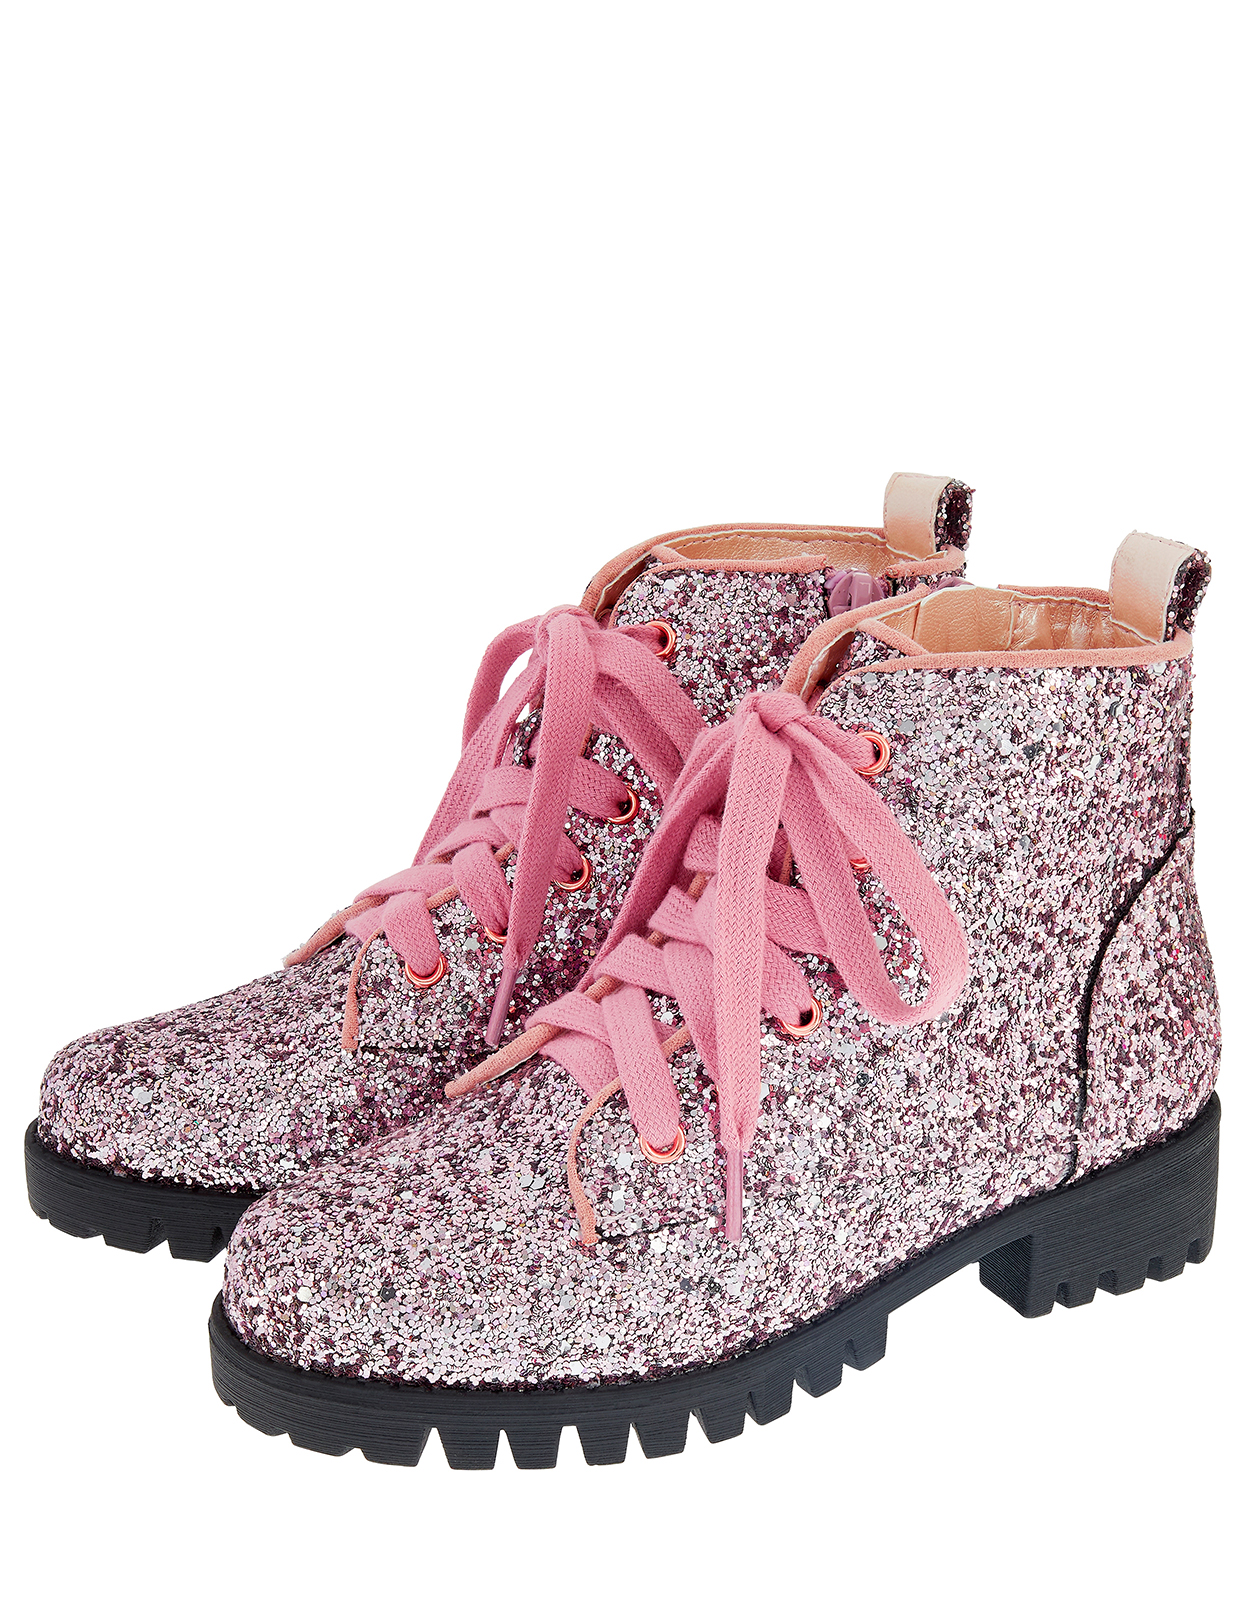 Monsoon Aaliyah Glitter Lace Up Ankle Boots